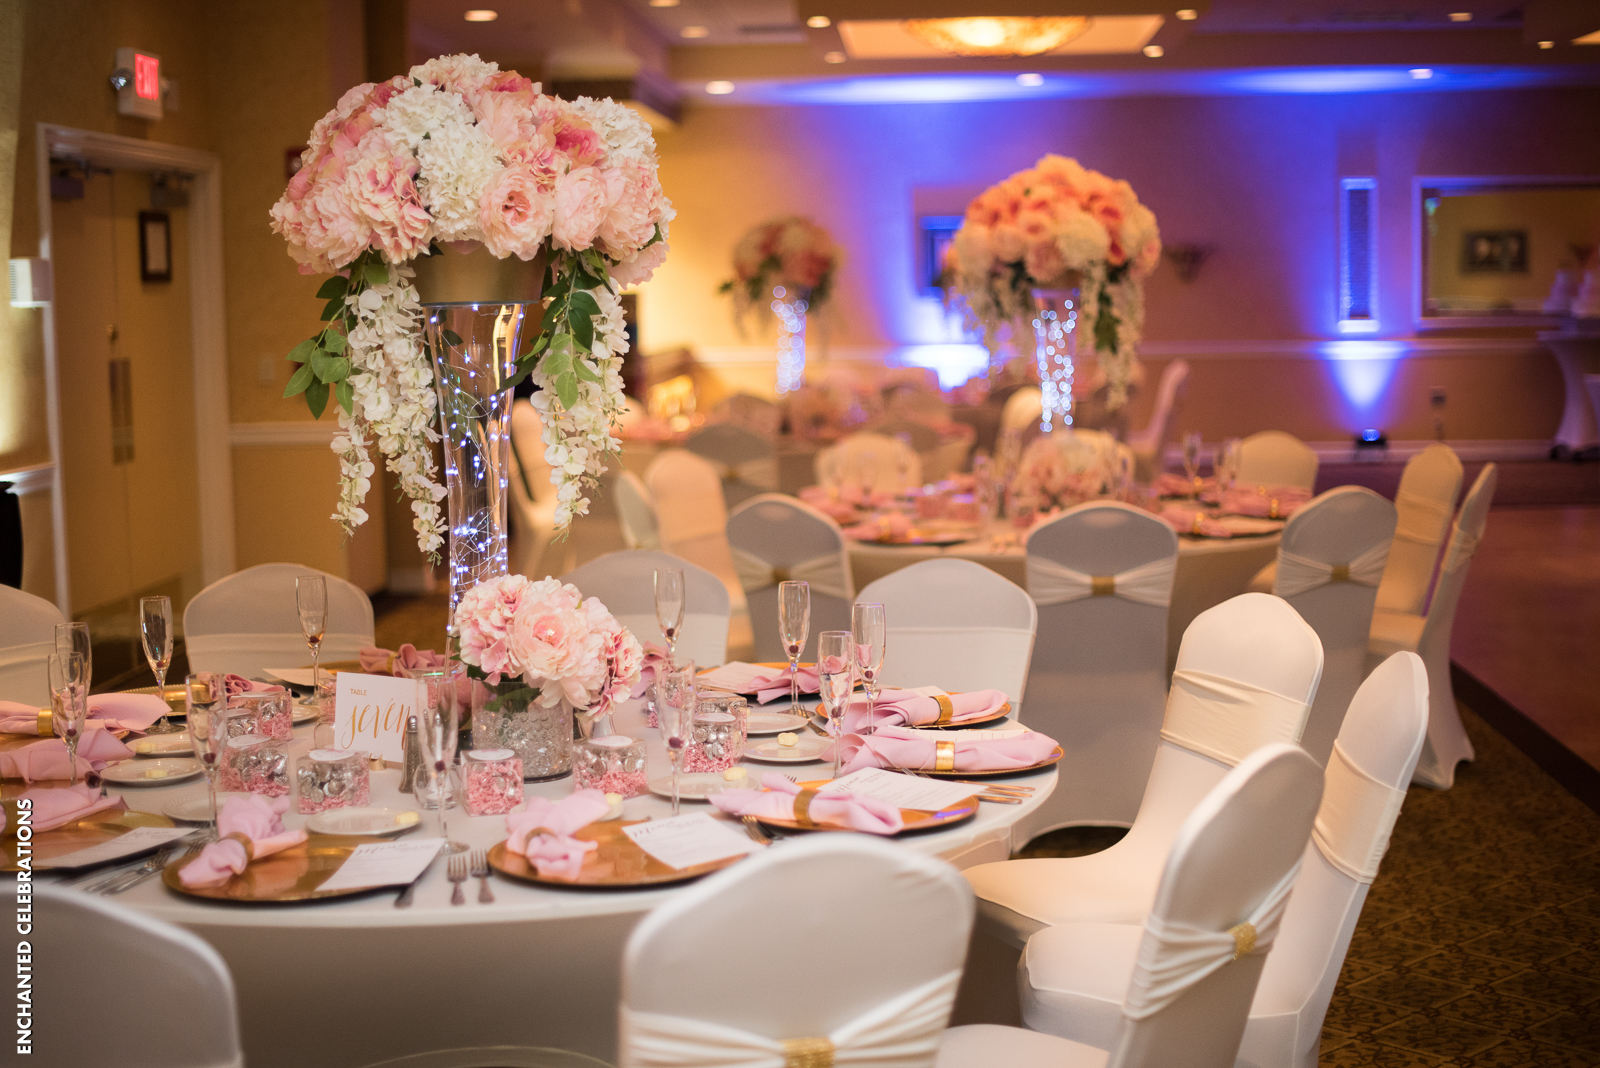 Bride and groom chose to decorate the Atlantis Ballroom in pretty pinks and gold accents.